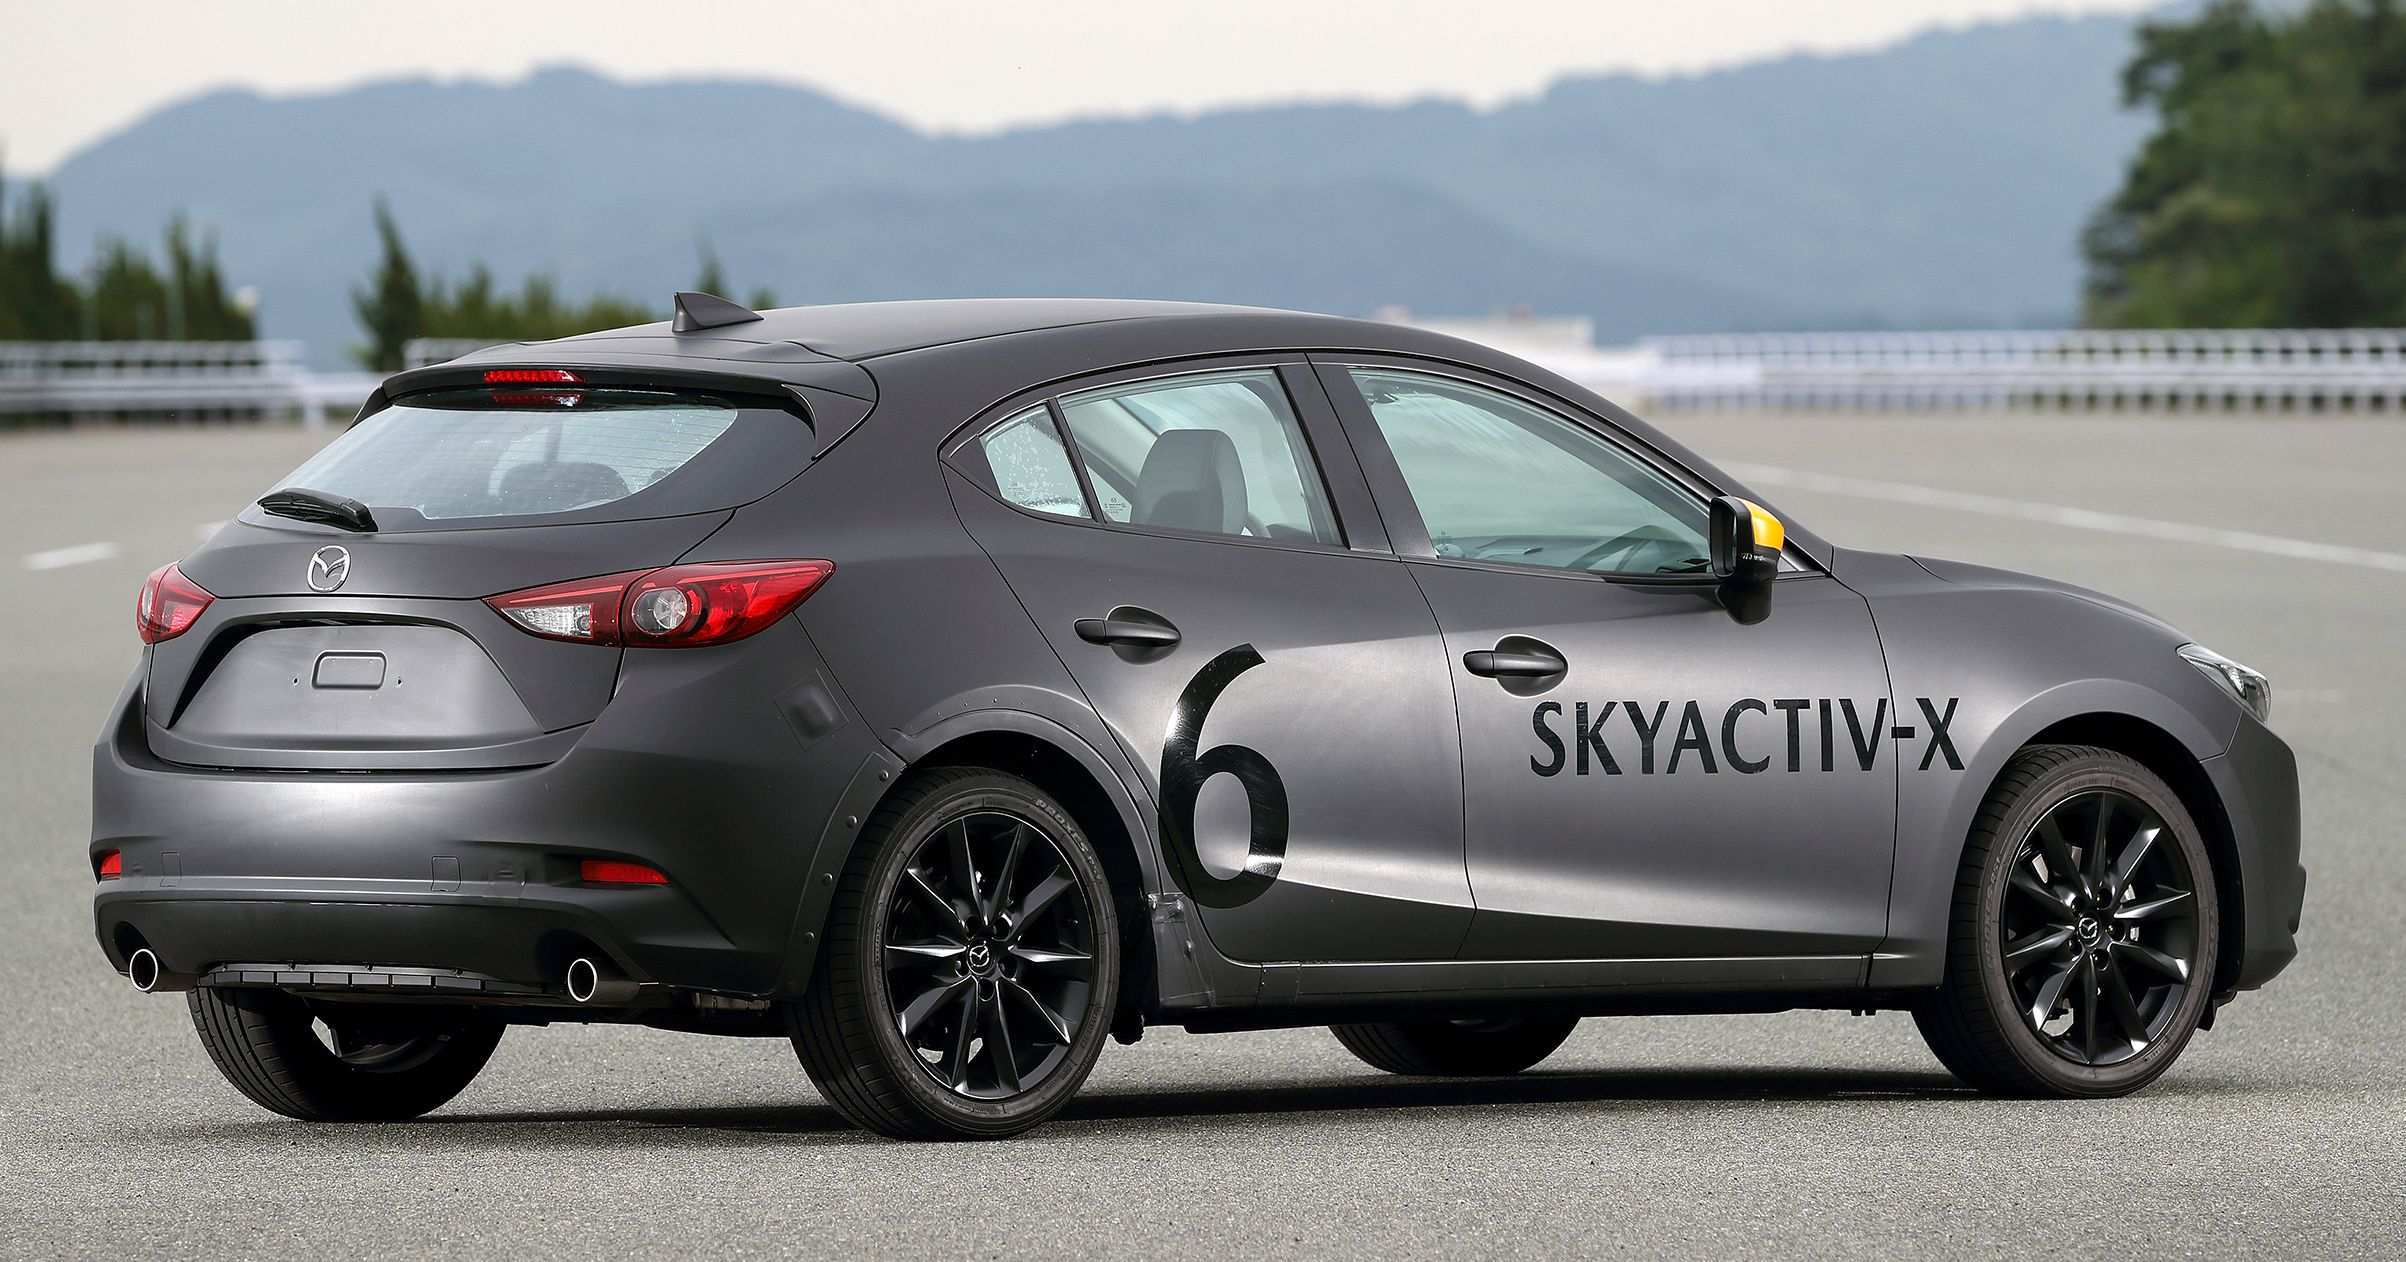 21 Great Mazda 2019 Engine Pictures by Mazda 2019 Engine